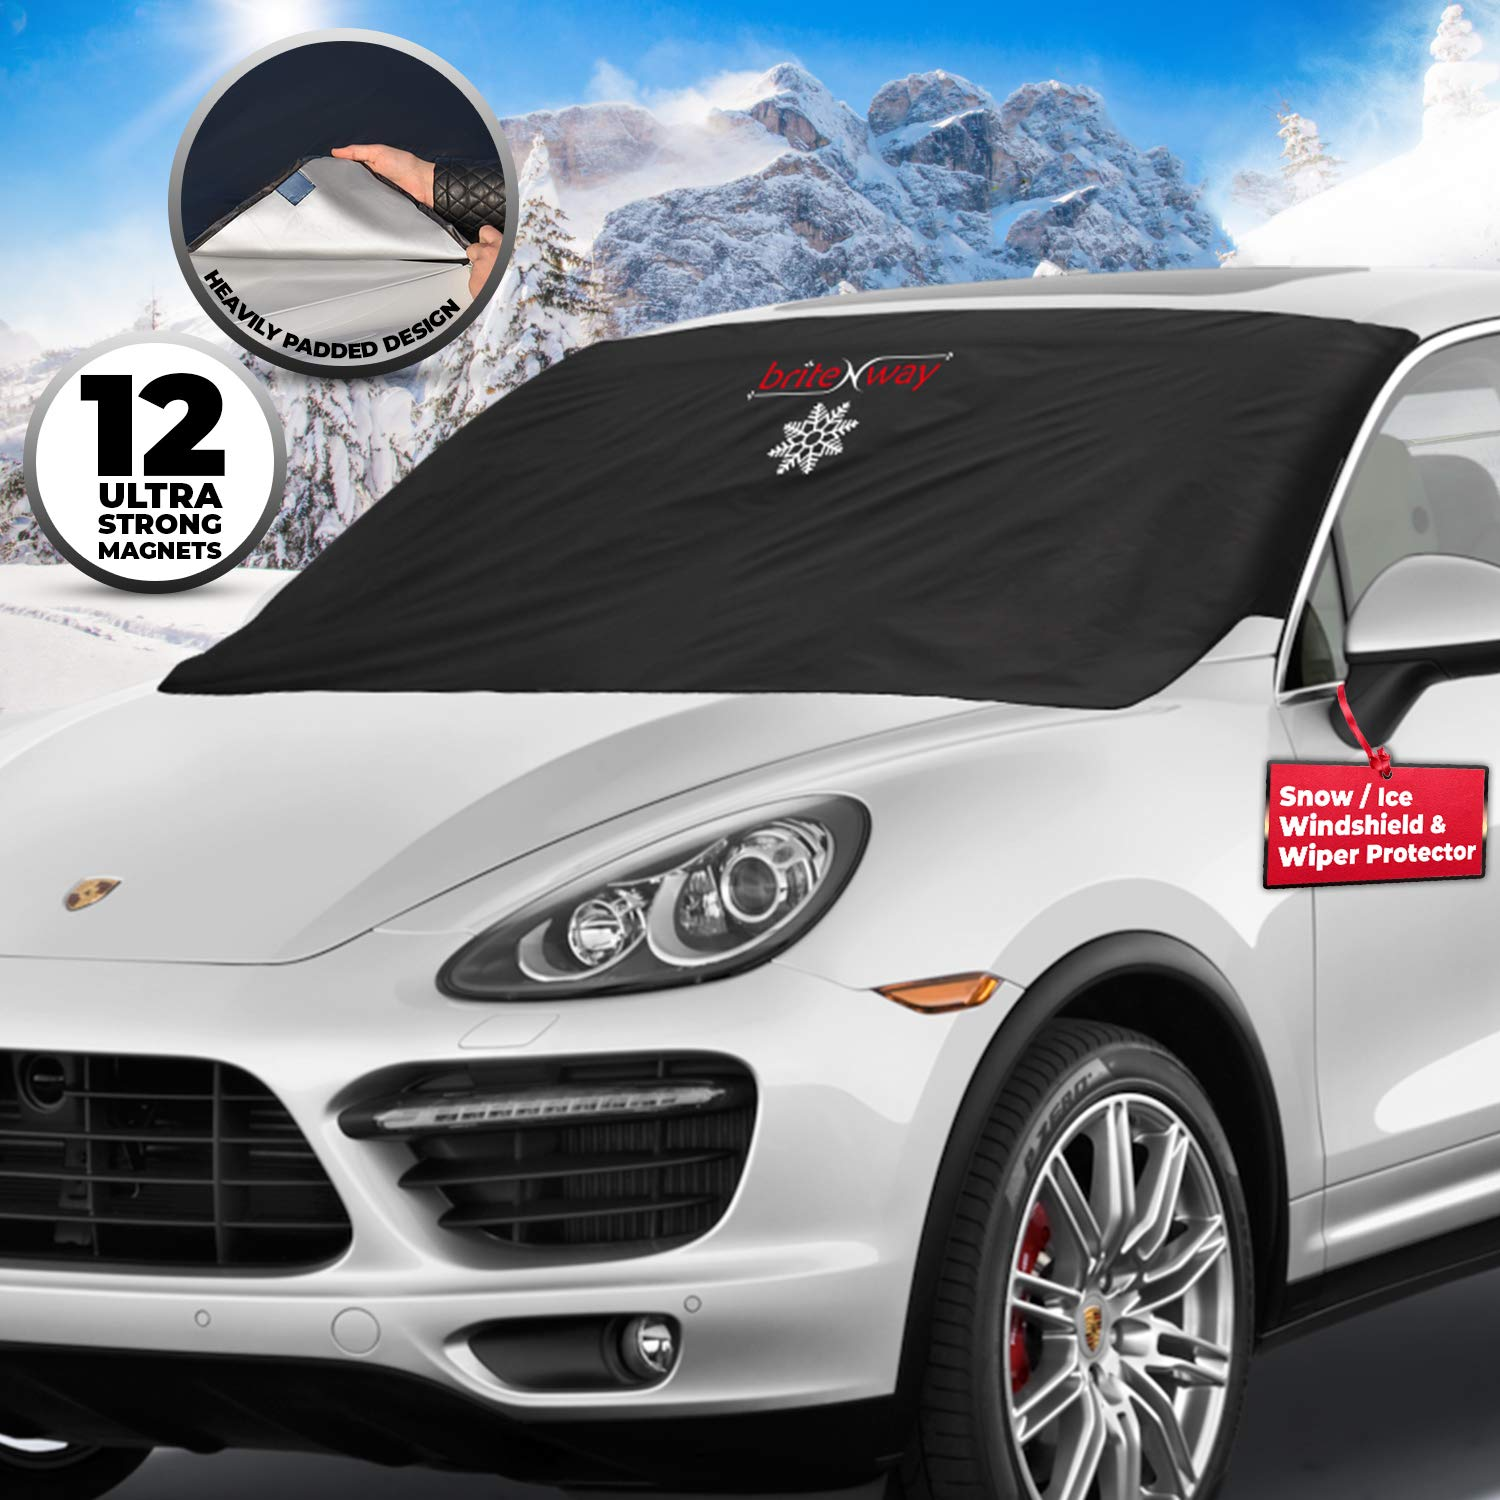 Windscreen Snow Cover - Auto Ice Wiper Protector - Non Scratch Magnetic - Sturdy - Heavy Duty Material - 127 x 157 cm - Keep your Vehicle Exterior Clean and Freeze Free - Car-Van - SUV briteNway BRTN00110